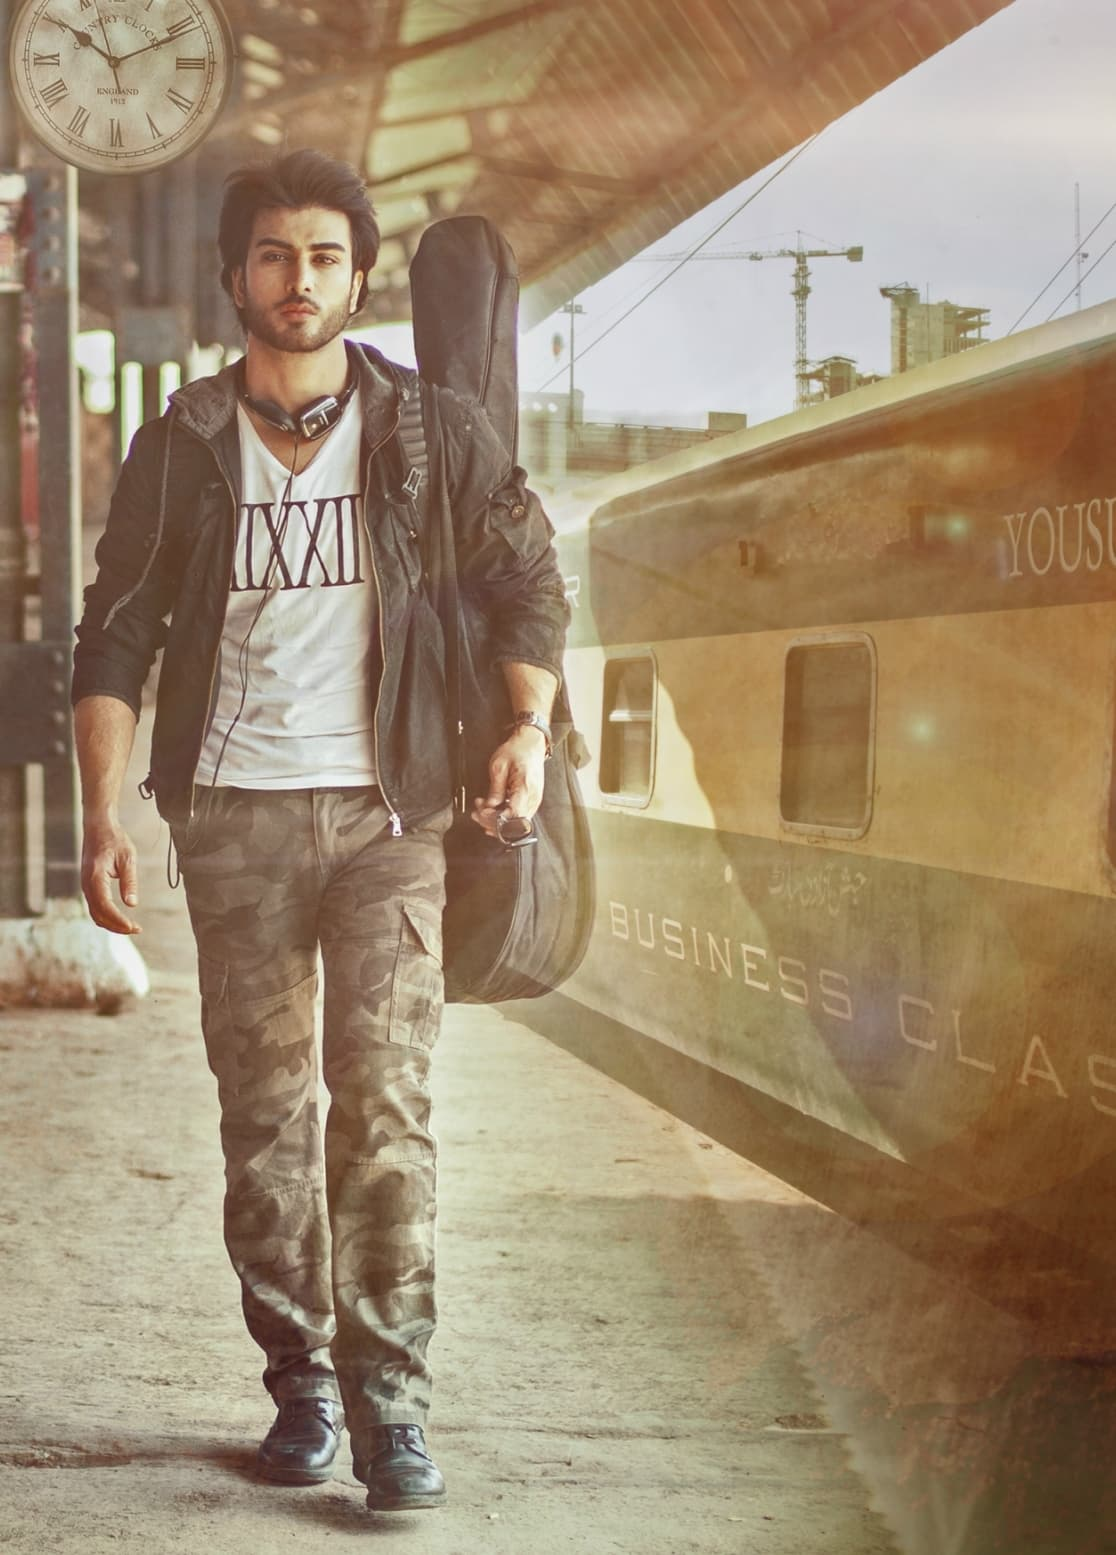 Yousuf on that infamous train platform. — Photo: Publicity